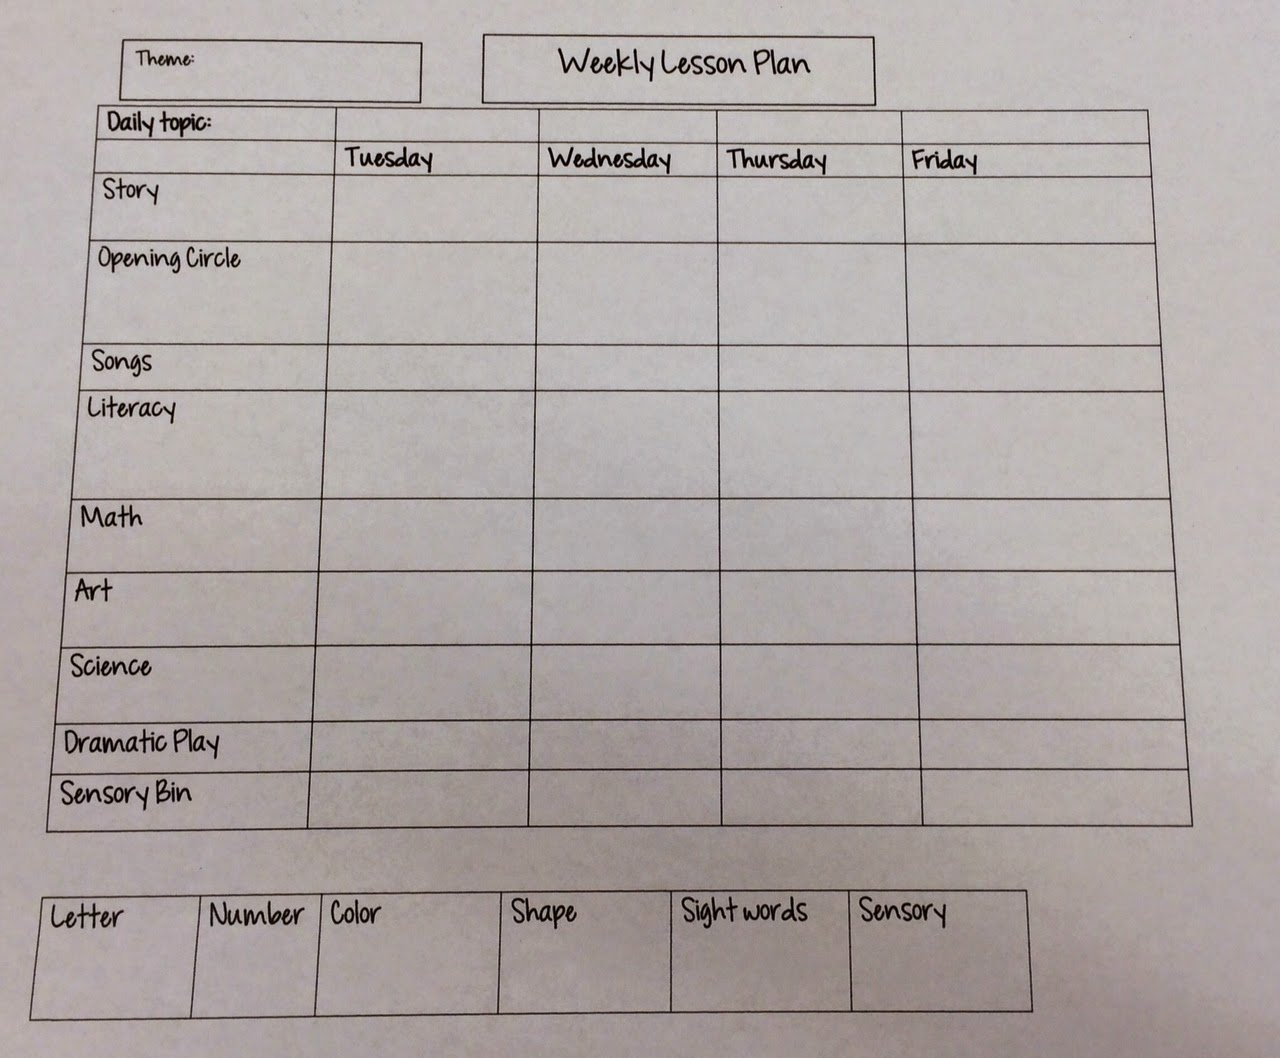 Toddler Lesson Plan Template New Miss Nicole S Preschool Weekly Lesson Plan Template